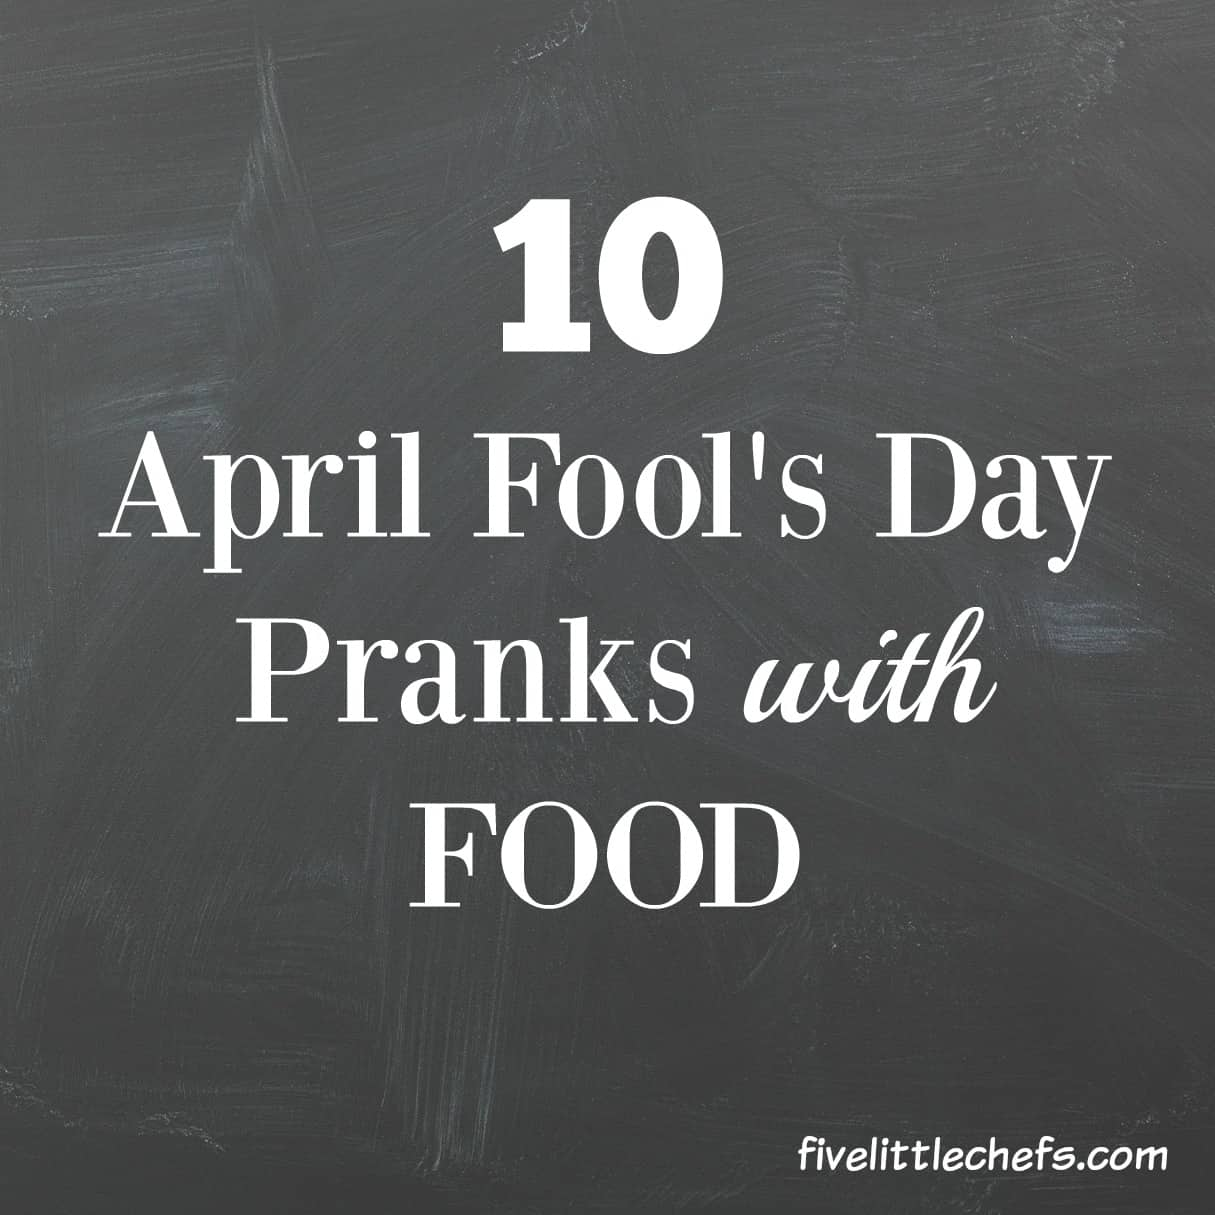 10 great April Fool's Day food pranks for kids. These fun ideas are great for families and friends. Invite them over for dinner this year!